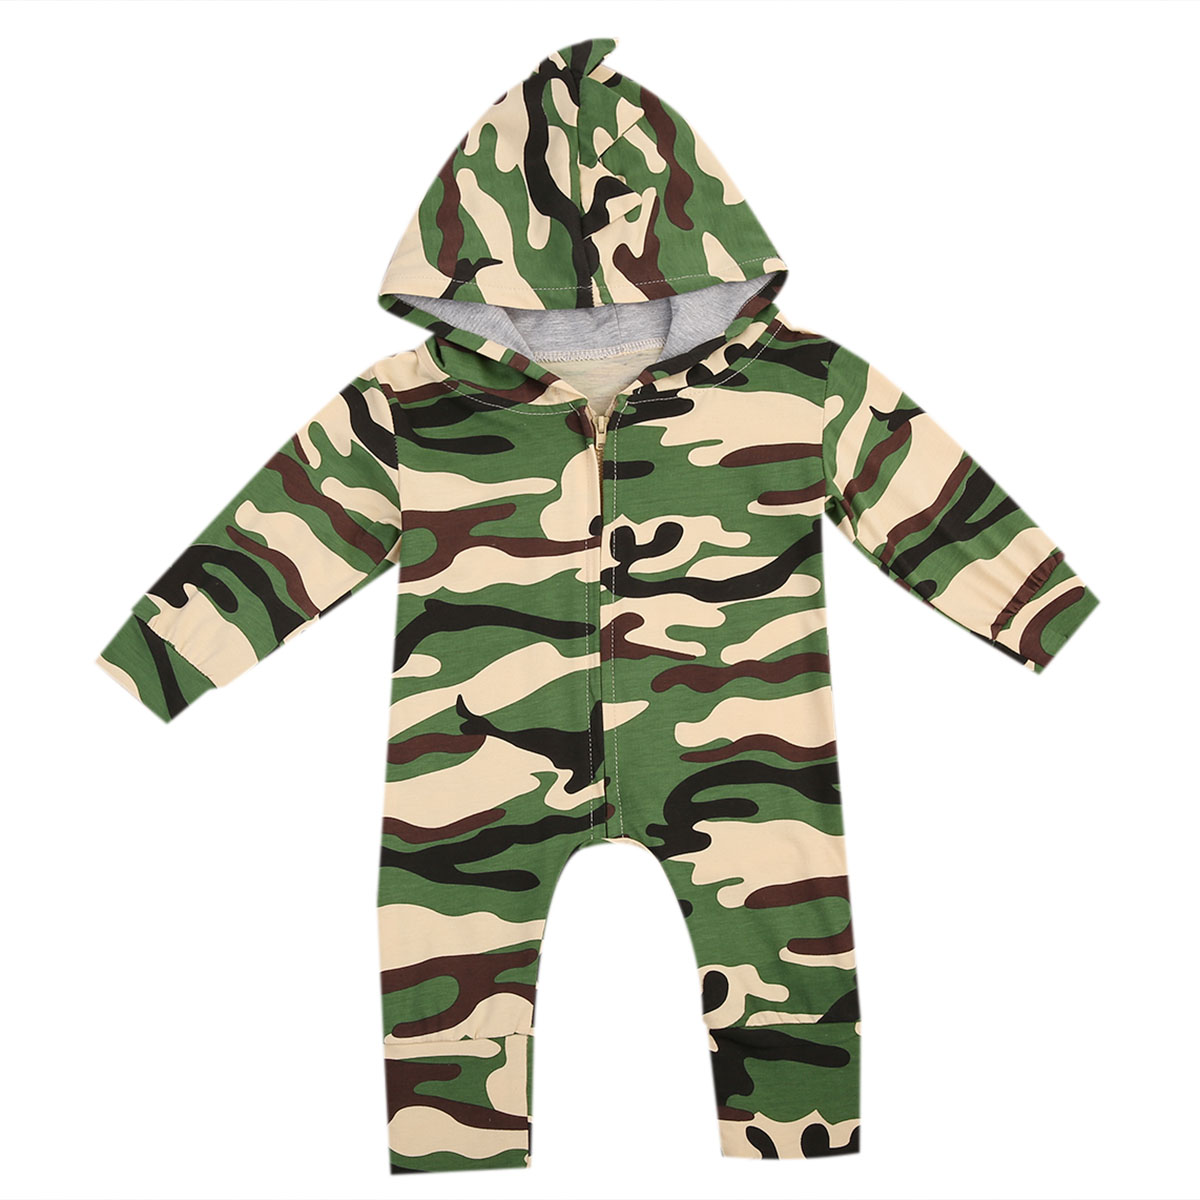 Newborn Kids Baby Boy Girl Infant Cotton Romper Jumpsuit Long Sleeve Cotton Cute Army Green Outfit Clothes baby boy clothes kids bodysuit infant coverall newborn romper short sleeve polo shirt cotton children costume outfit suit